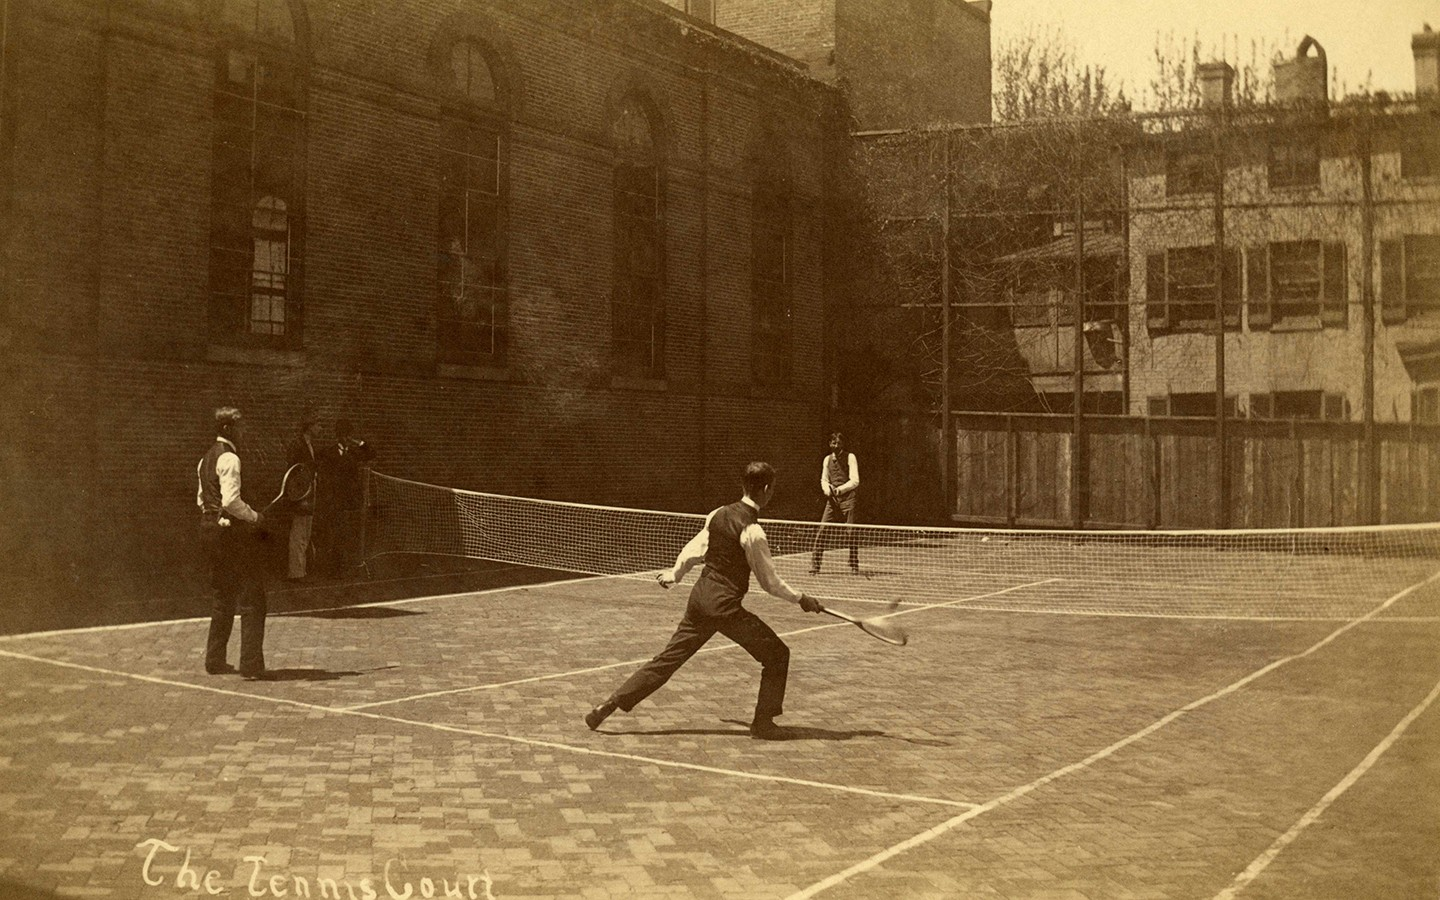 Men in suit vests play tennis